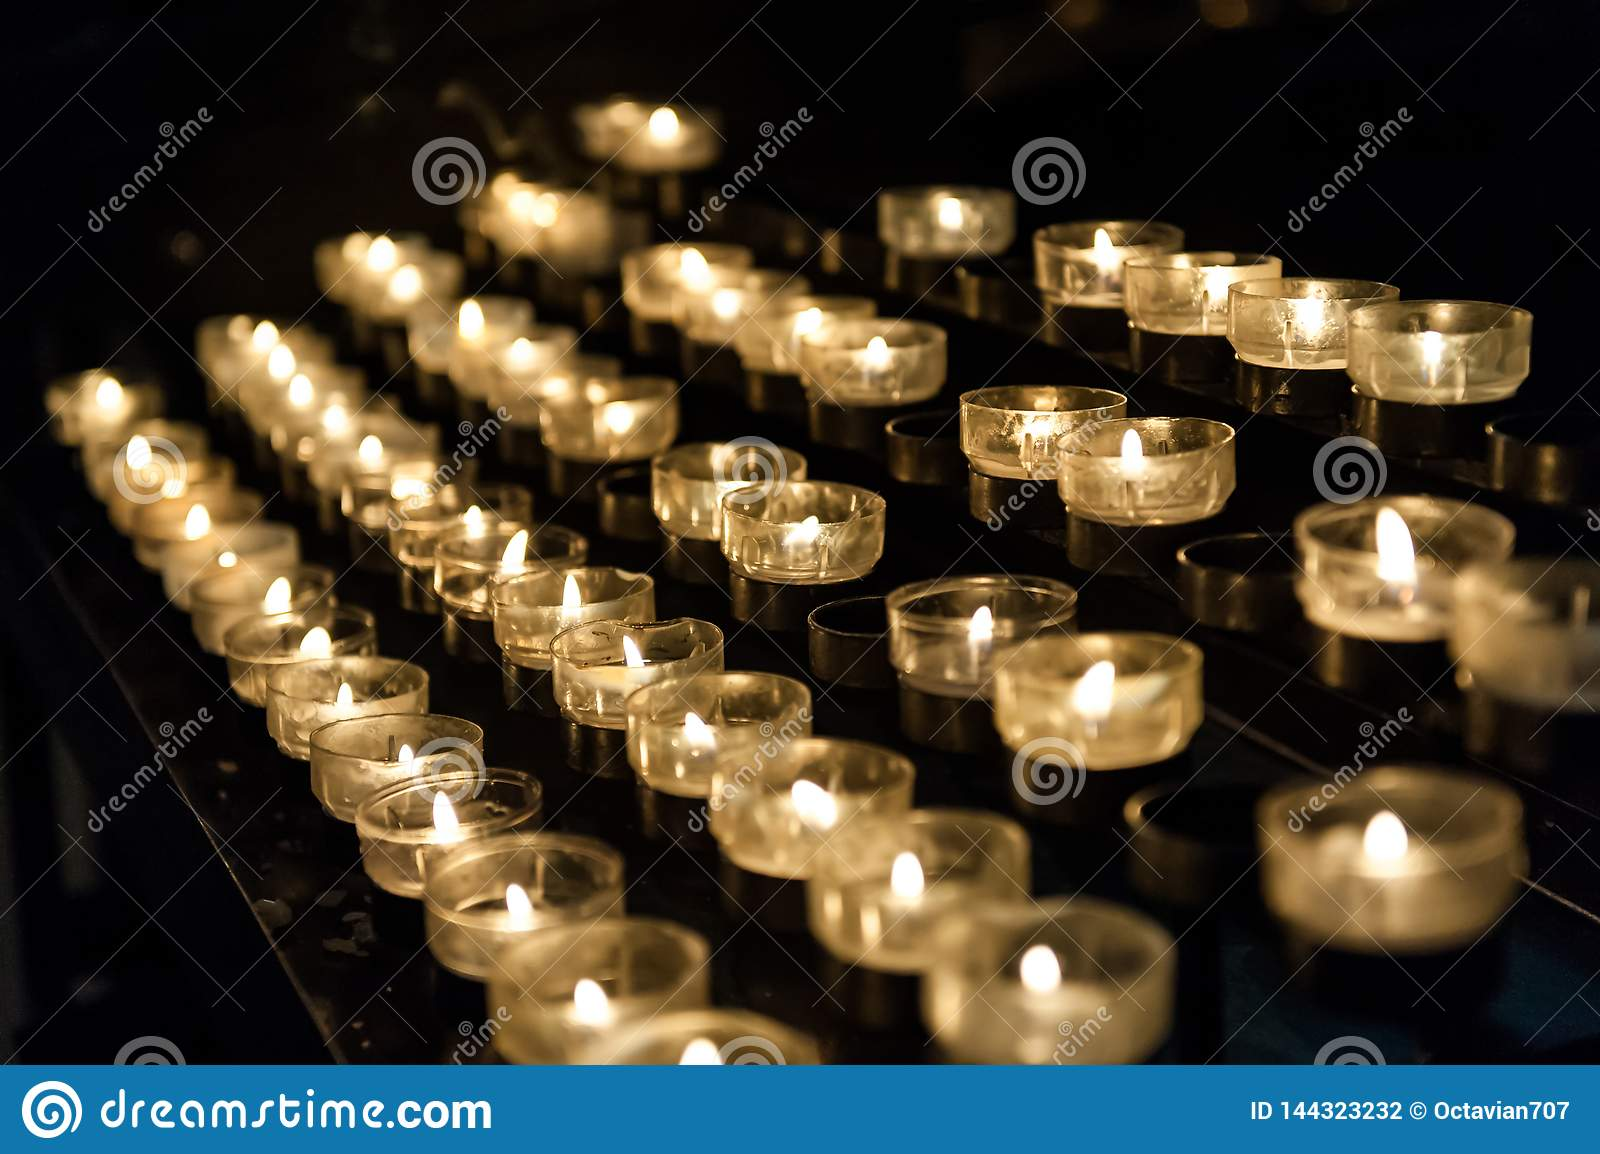 Many small candles in the church lightning in the dark